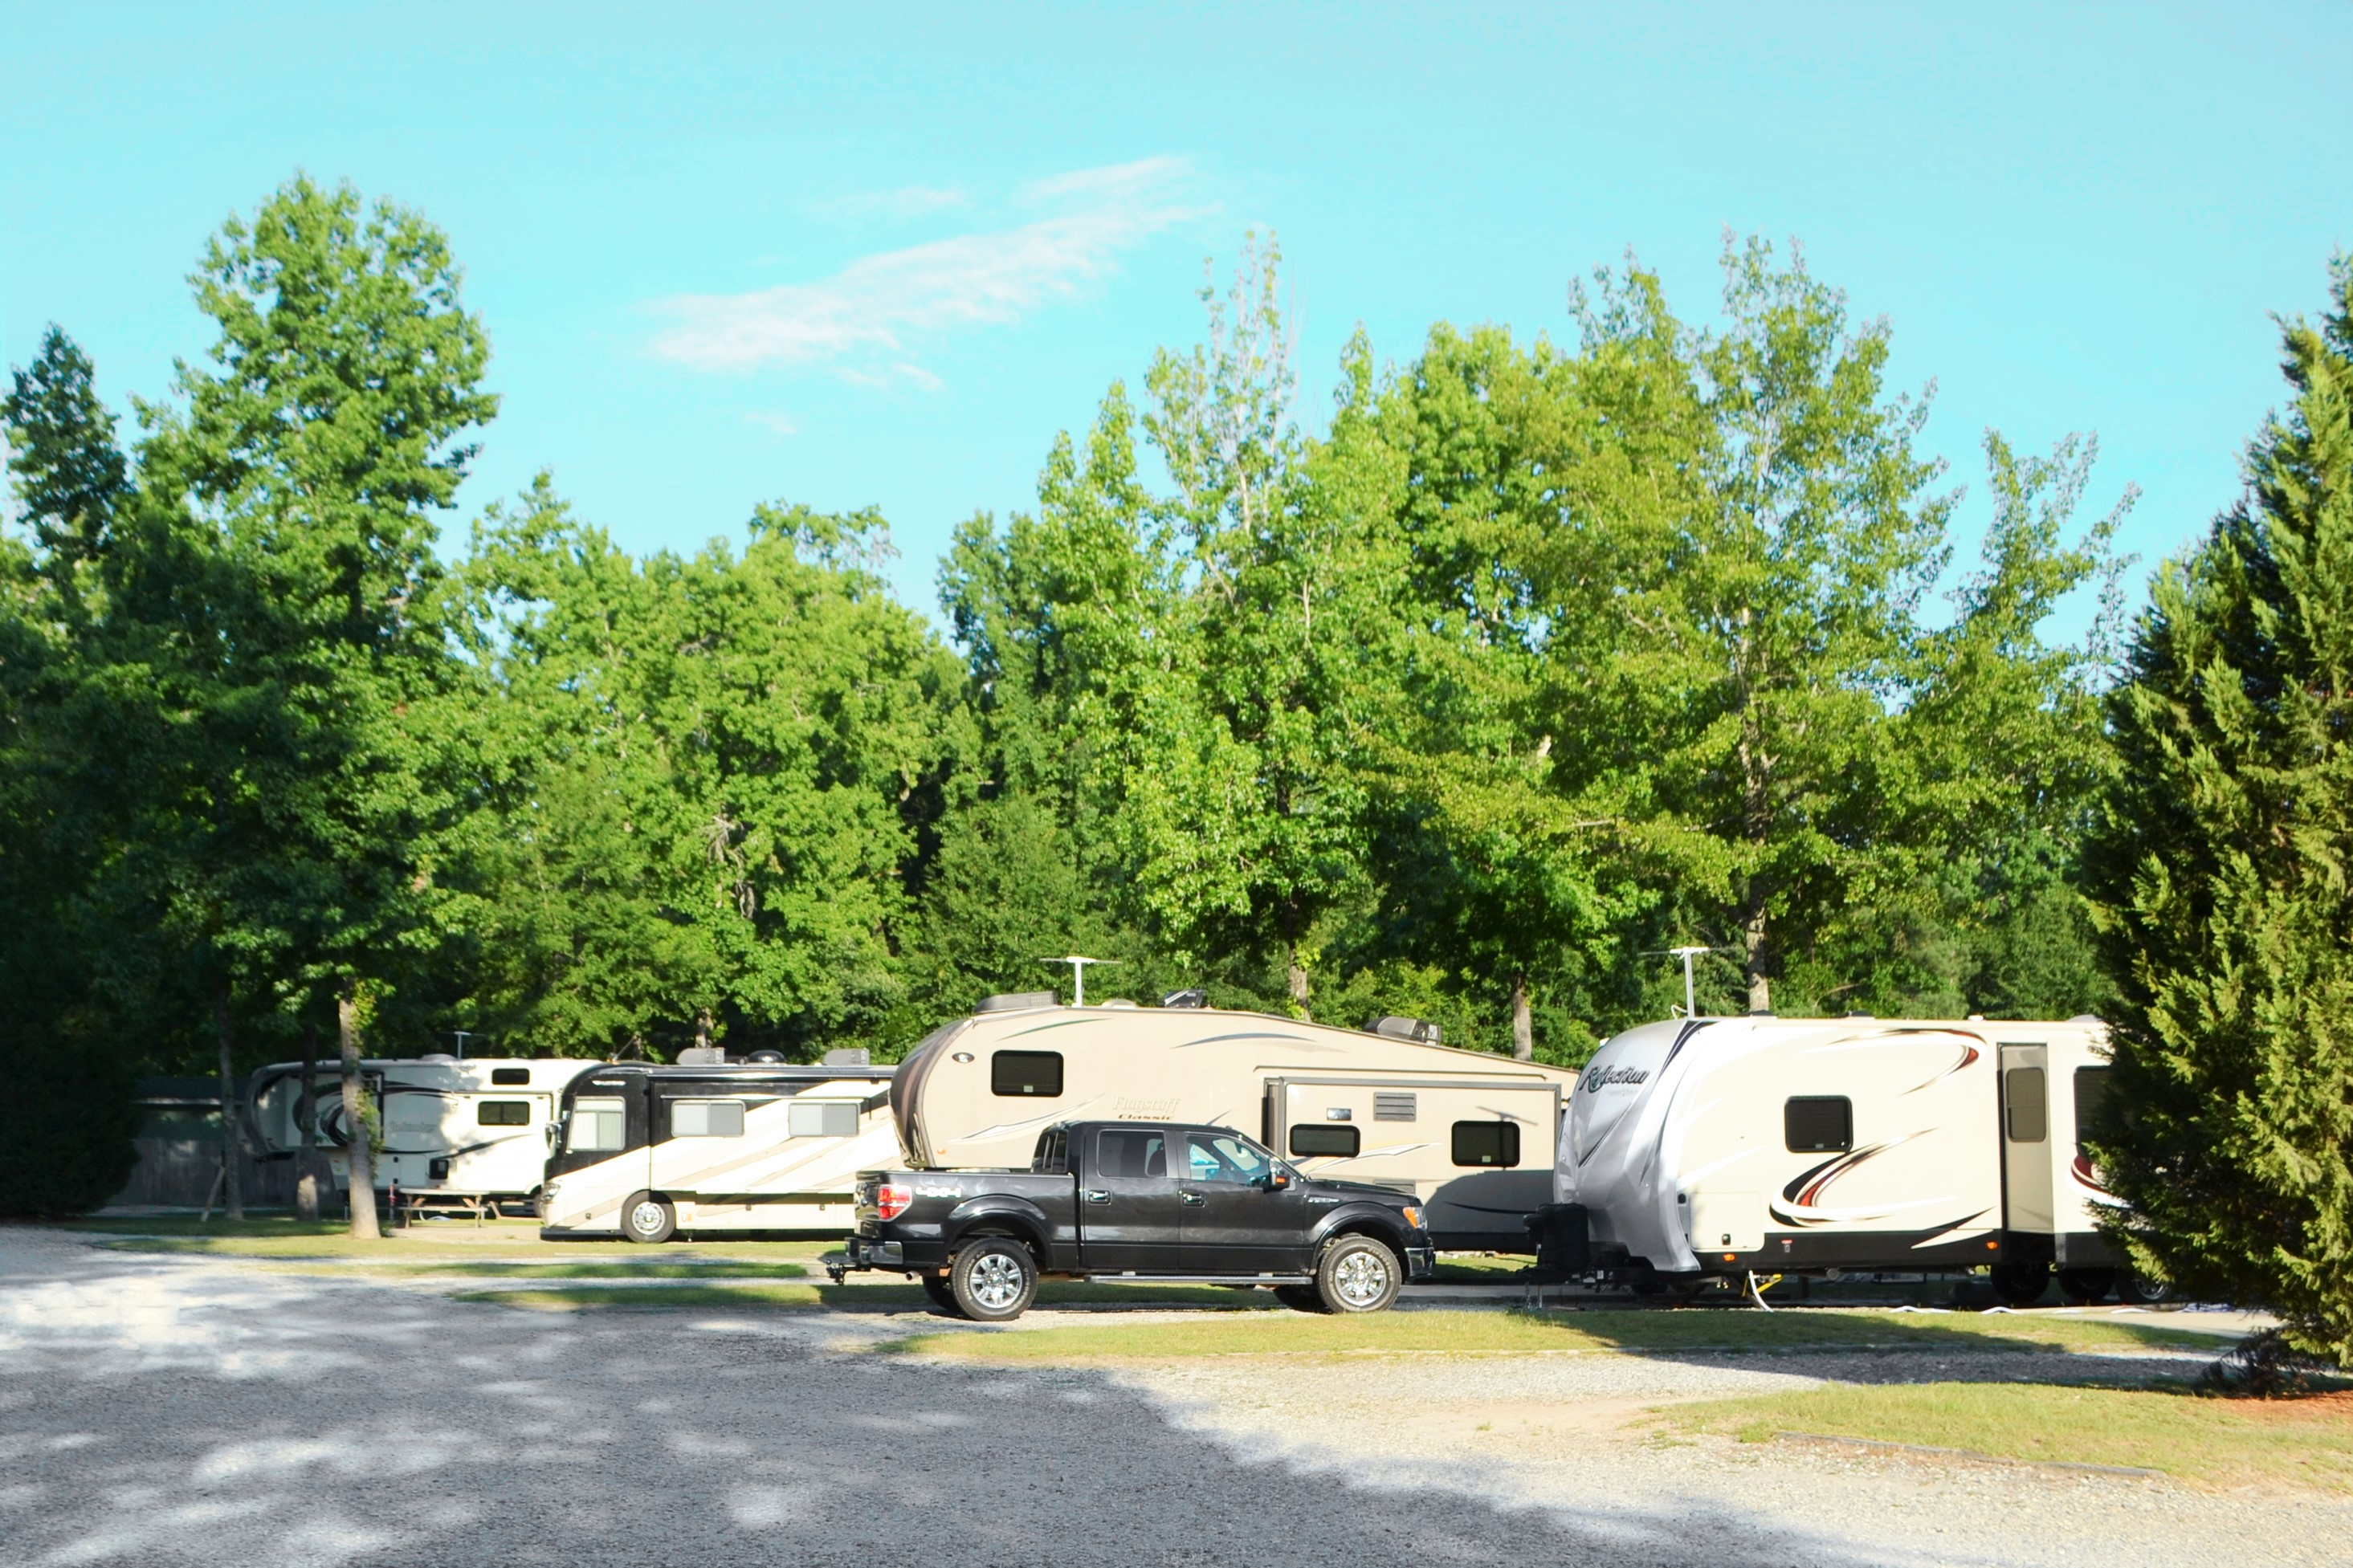 Lake Pines Campground and RV Park - RV sites